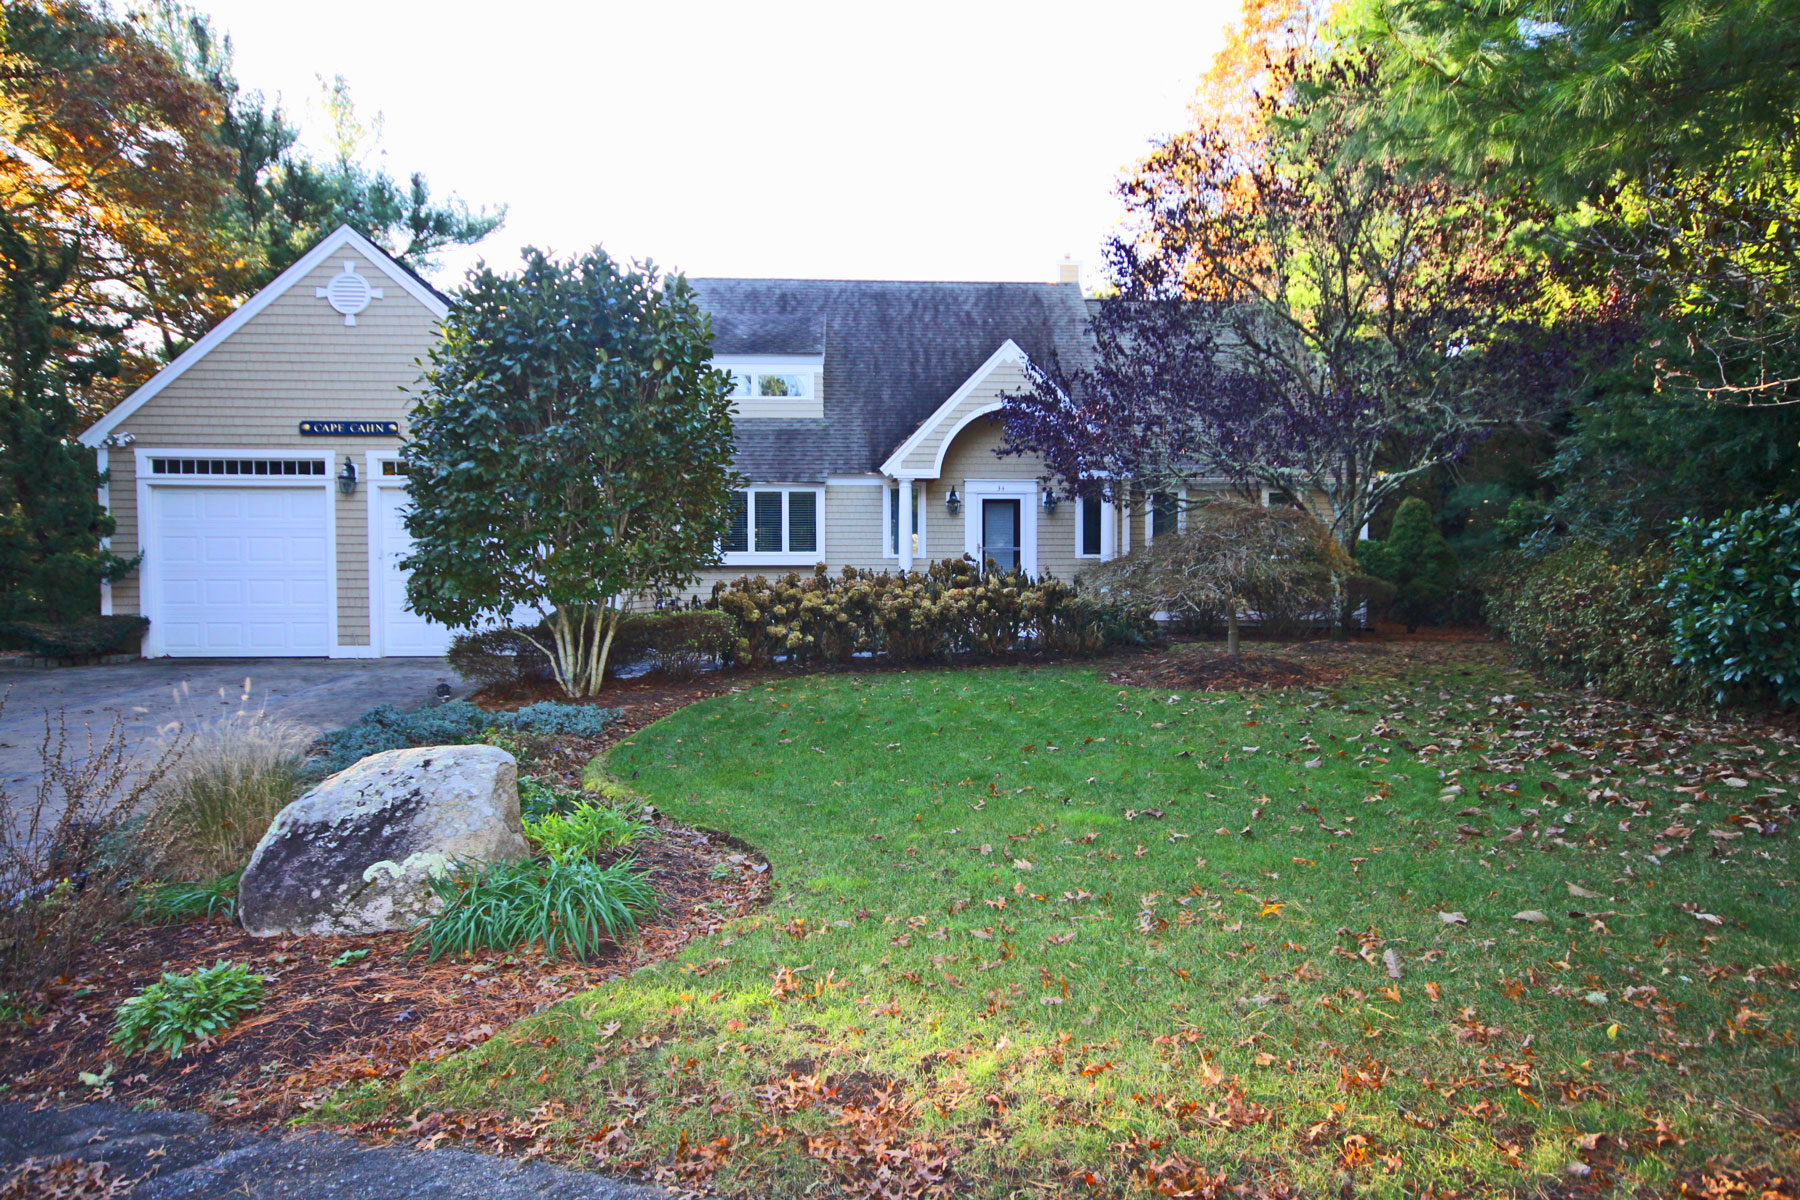 Single Family Home for Sale at PRISTINE CONTEMPORARY HOME 34 Periwinkle Lane, New Seabury, Massachusetts, 02649 United States